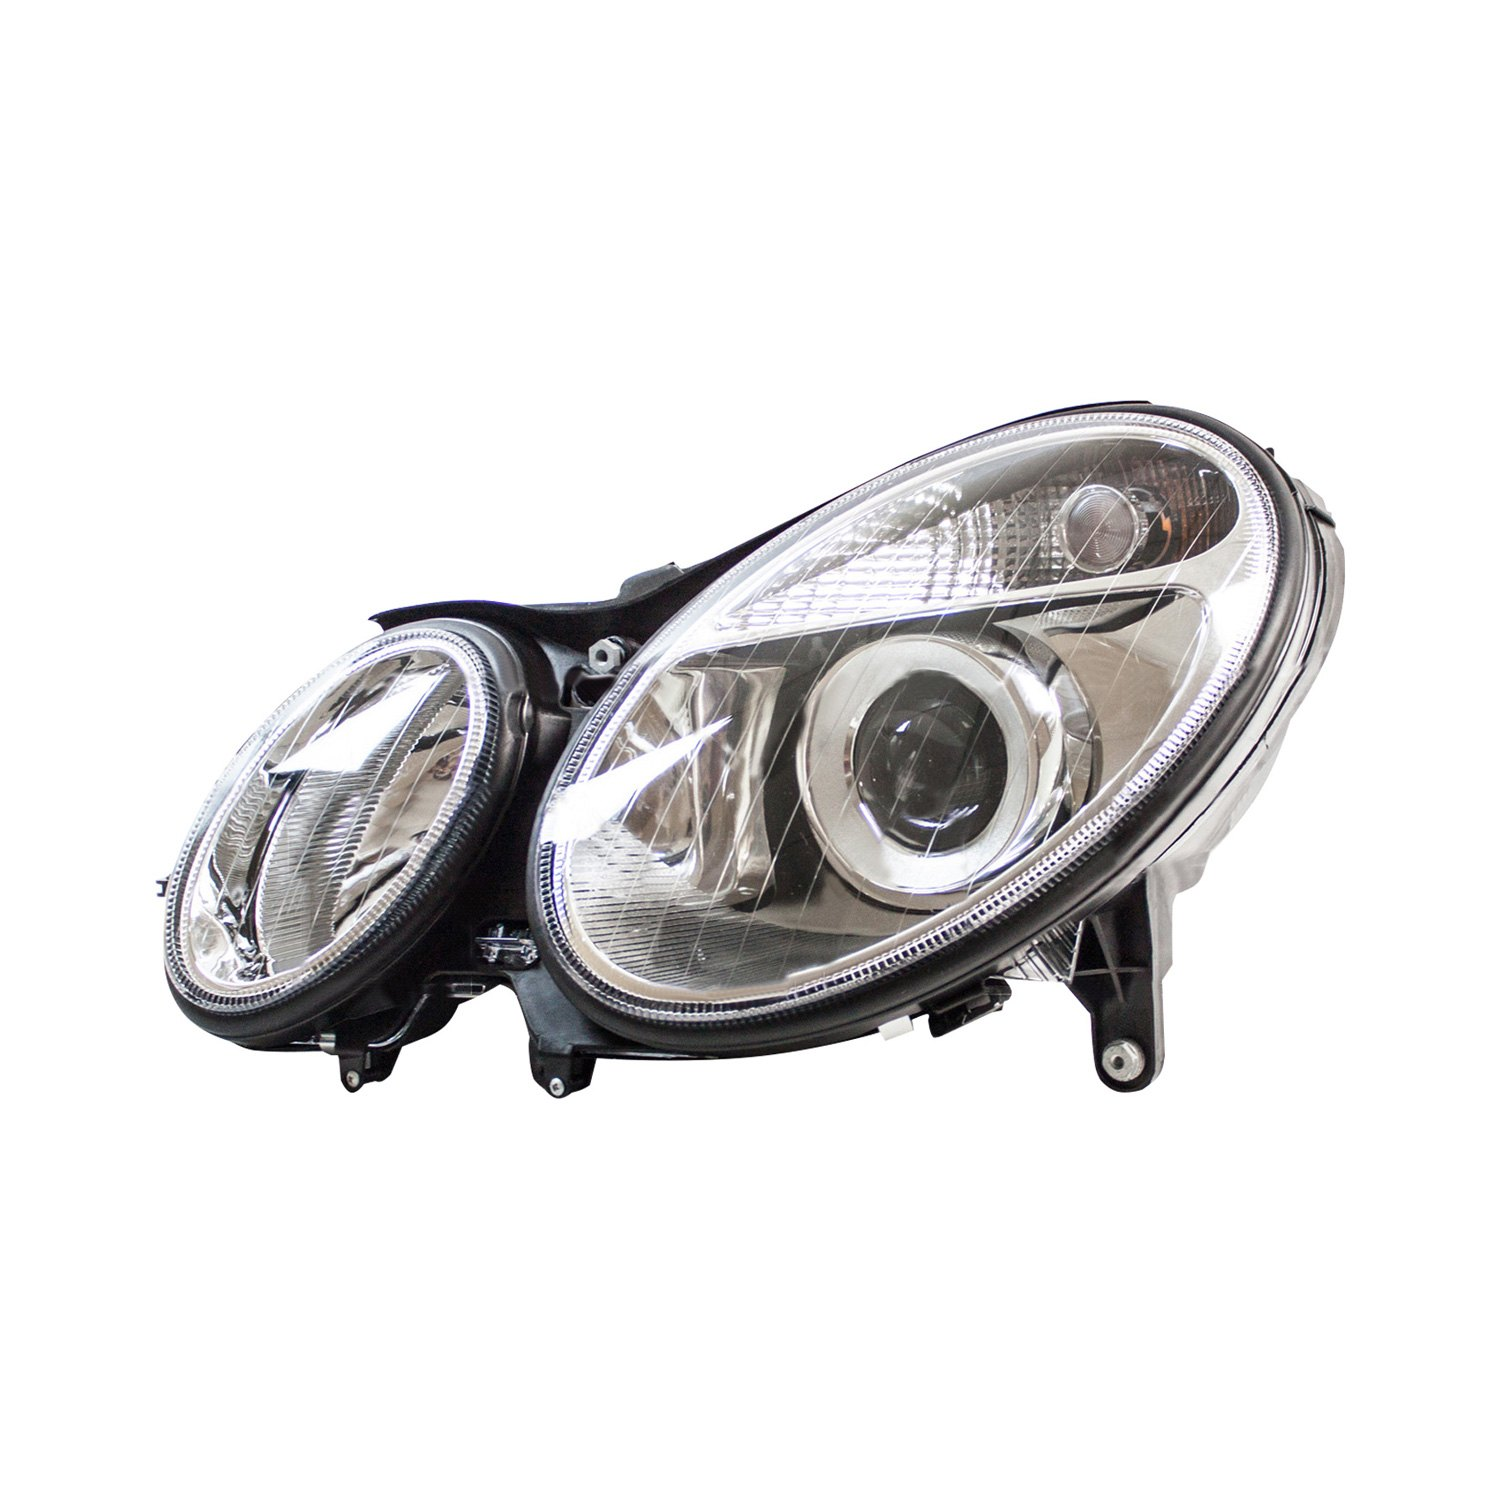 Tyc mercedes e320 e500 e55 amg sedan with factory for Mercedes benz headlight replacement